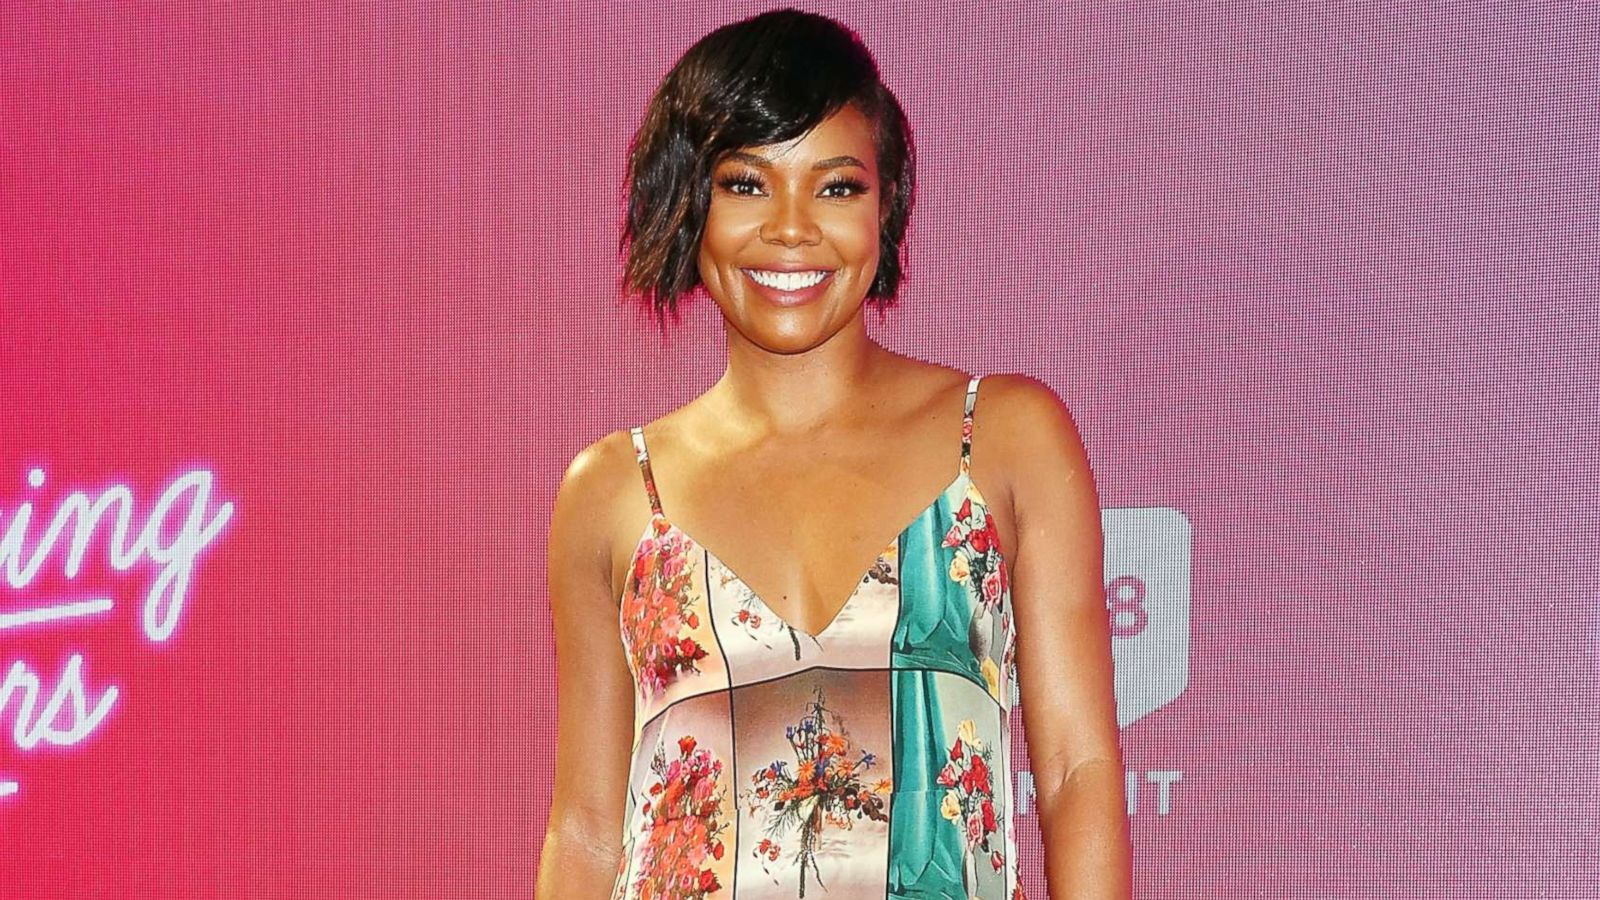 gabrielle-union-offers-fans-and-followers-advice-for-a-healthy-body